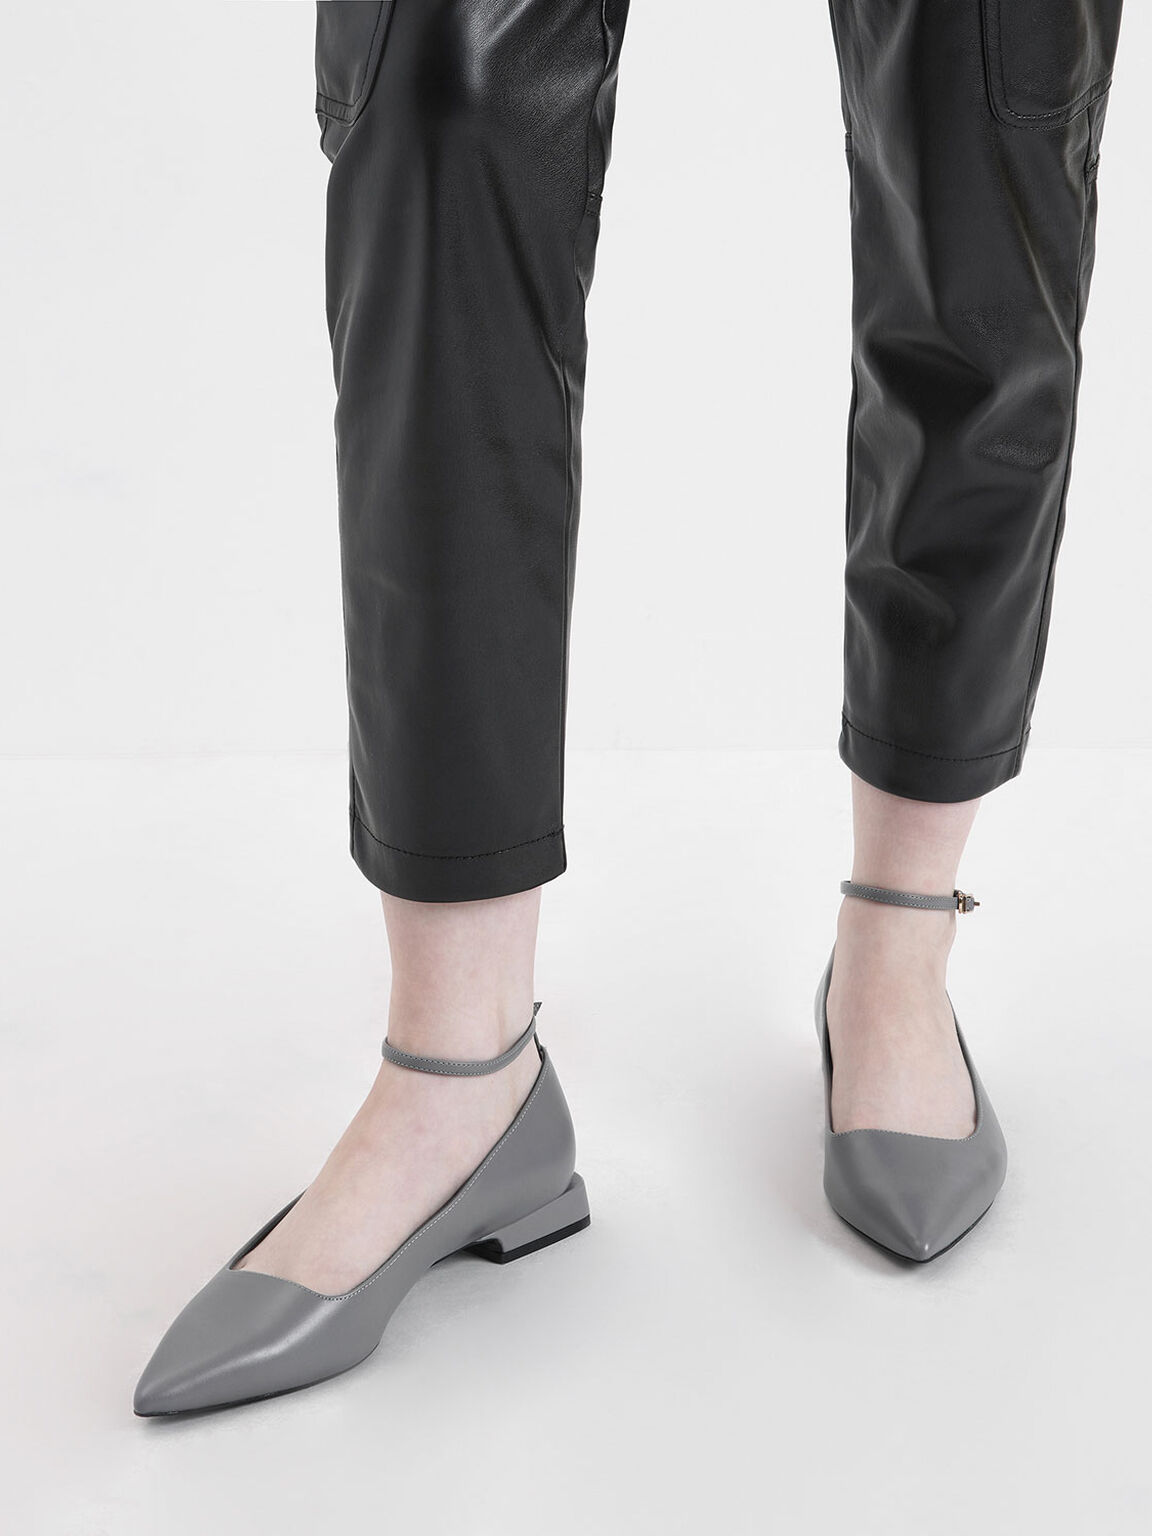 Ankle Strap Flats, Grey, hi-res